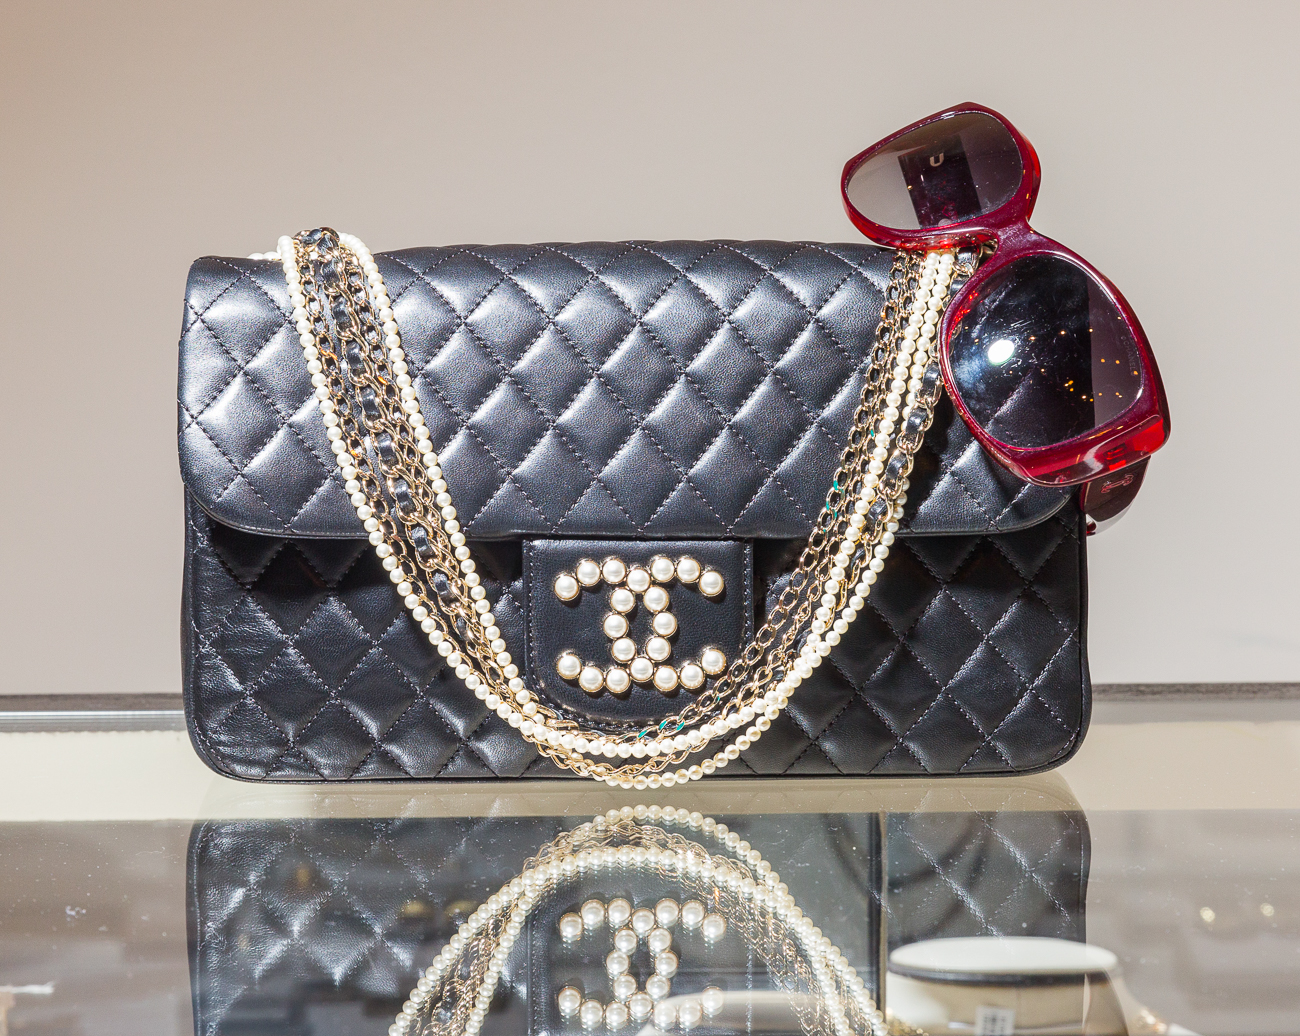 Examples: A name brand hand bag that retails for $200 looks as good as new, but sells for $85. A black satin bar clutch with gold-tone hardware originally costs $1,590, but is discounted to $750. For those looking to add high-end fashion to their ensemble for less, ShopJacobJames is worth perusing. / Image: Ross Van Pelt of RVP Photography // Published: 6.19.19